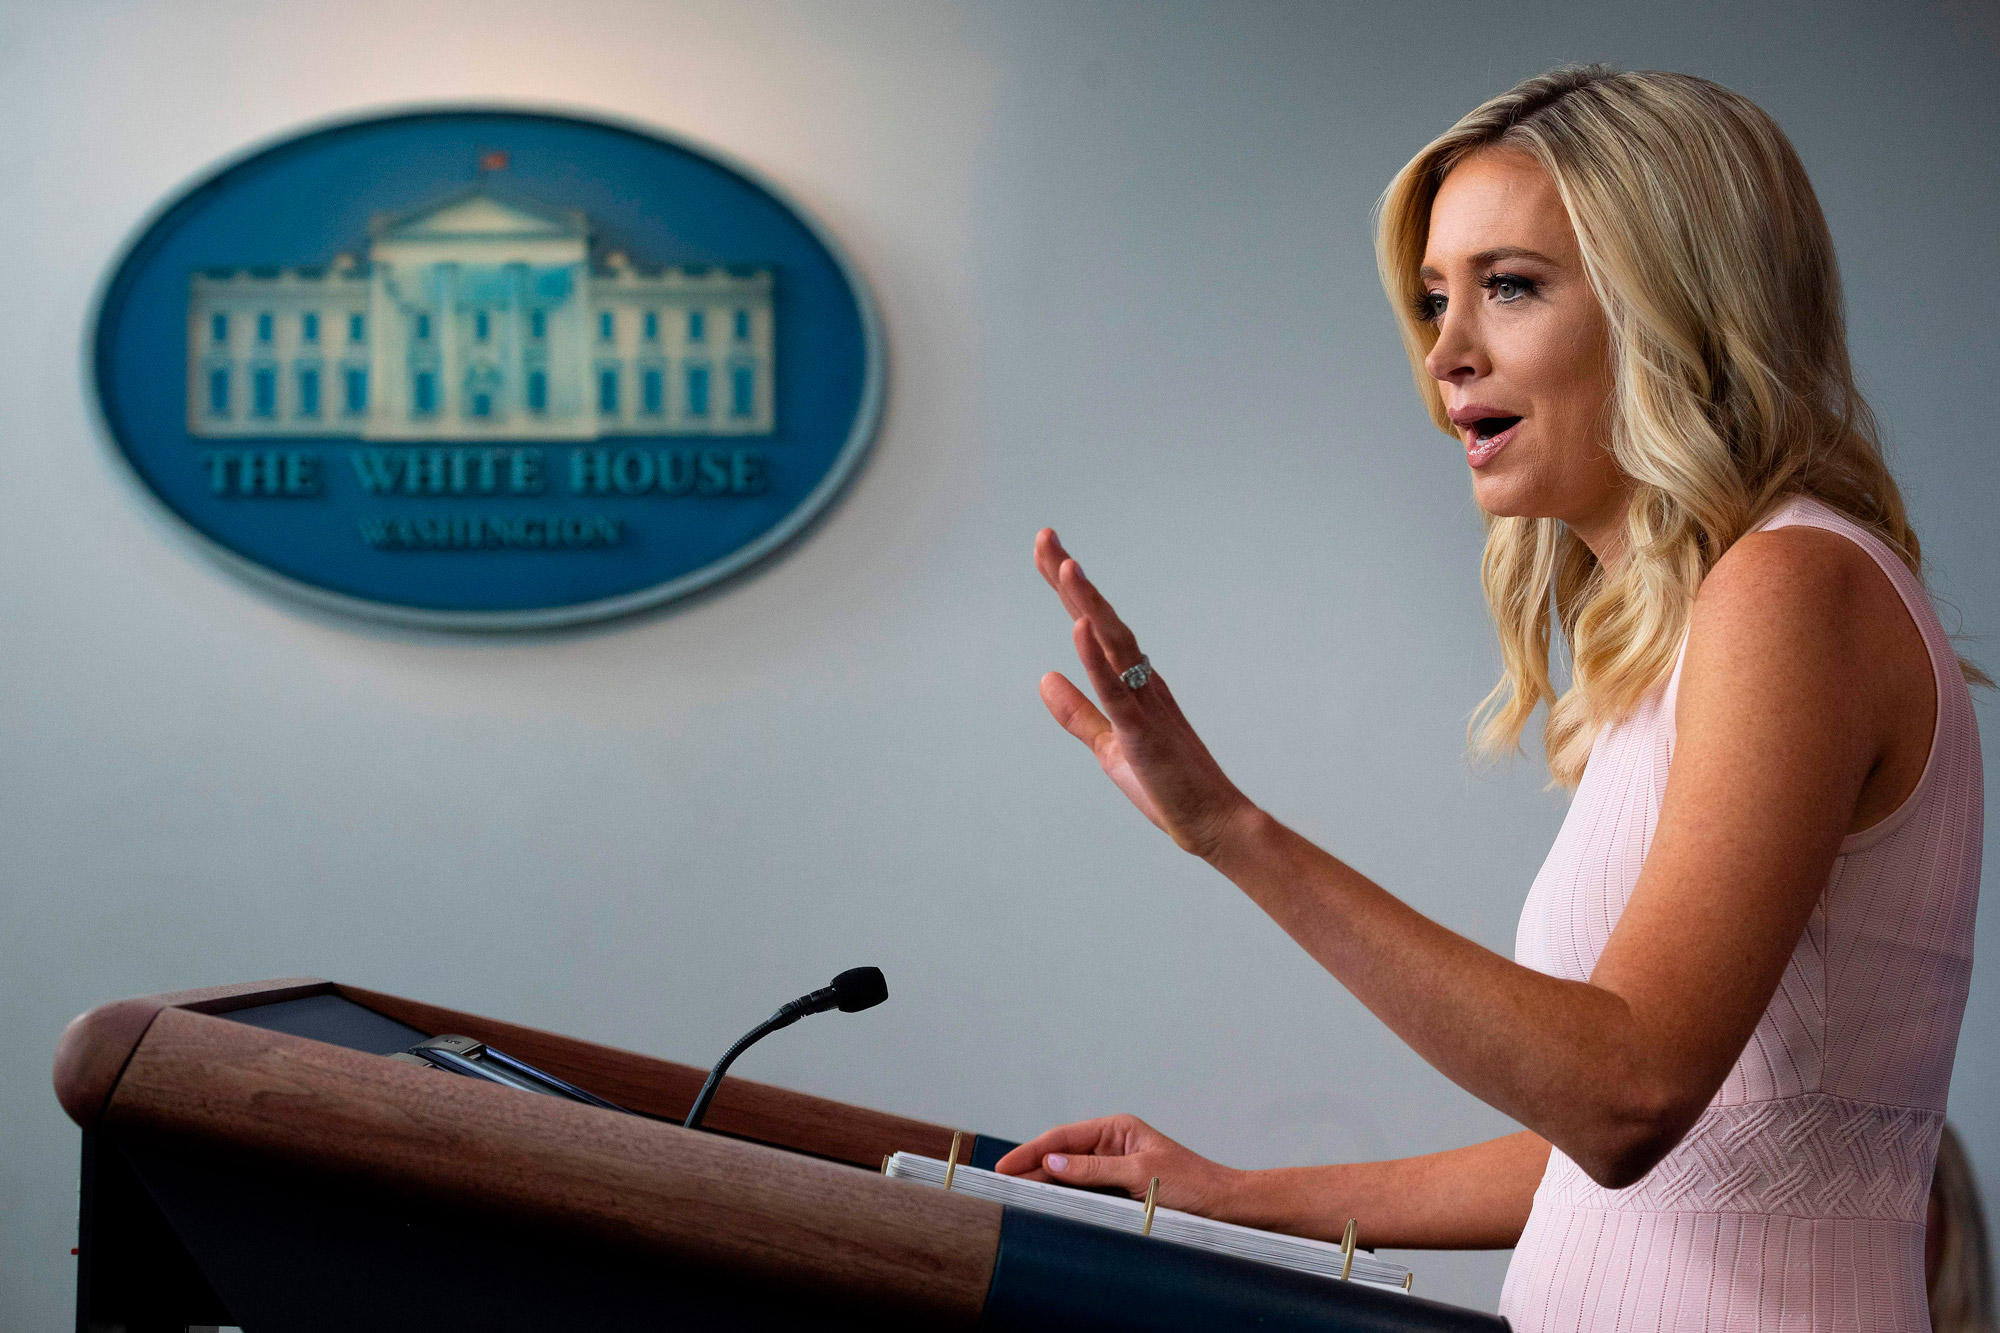 White House Press Secretary Kayleigh McEnany speaks during a press briefing at the White House in Washington, DC, on July 13.